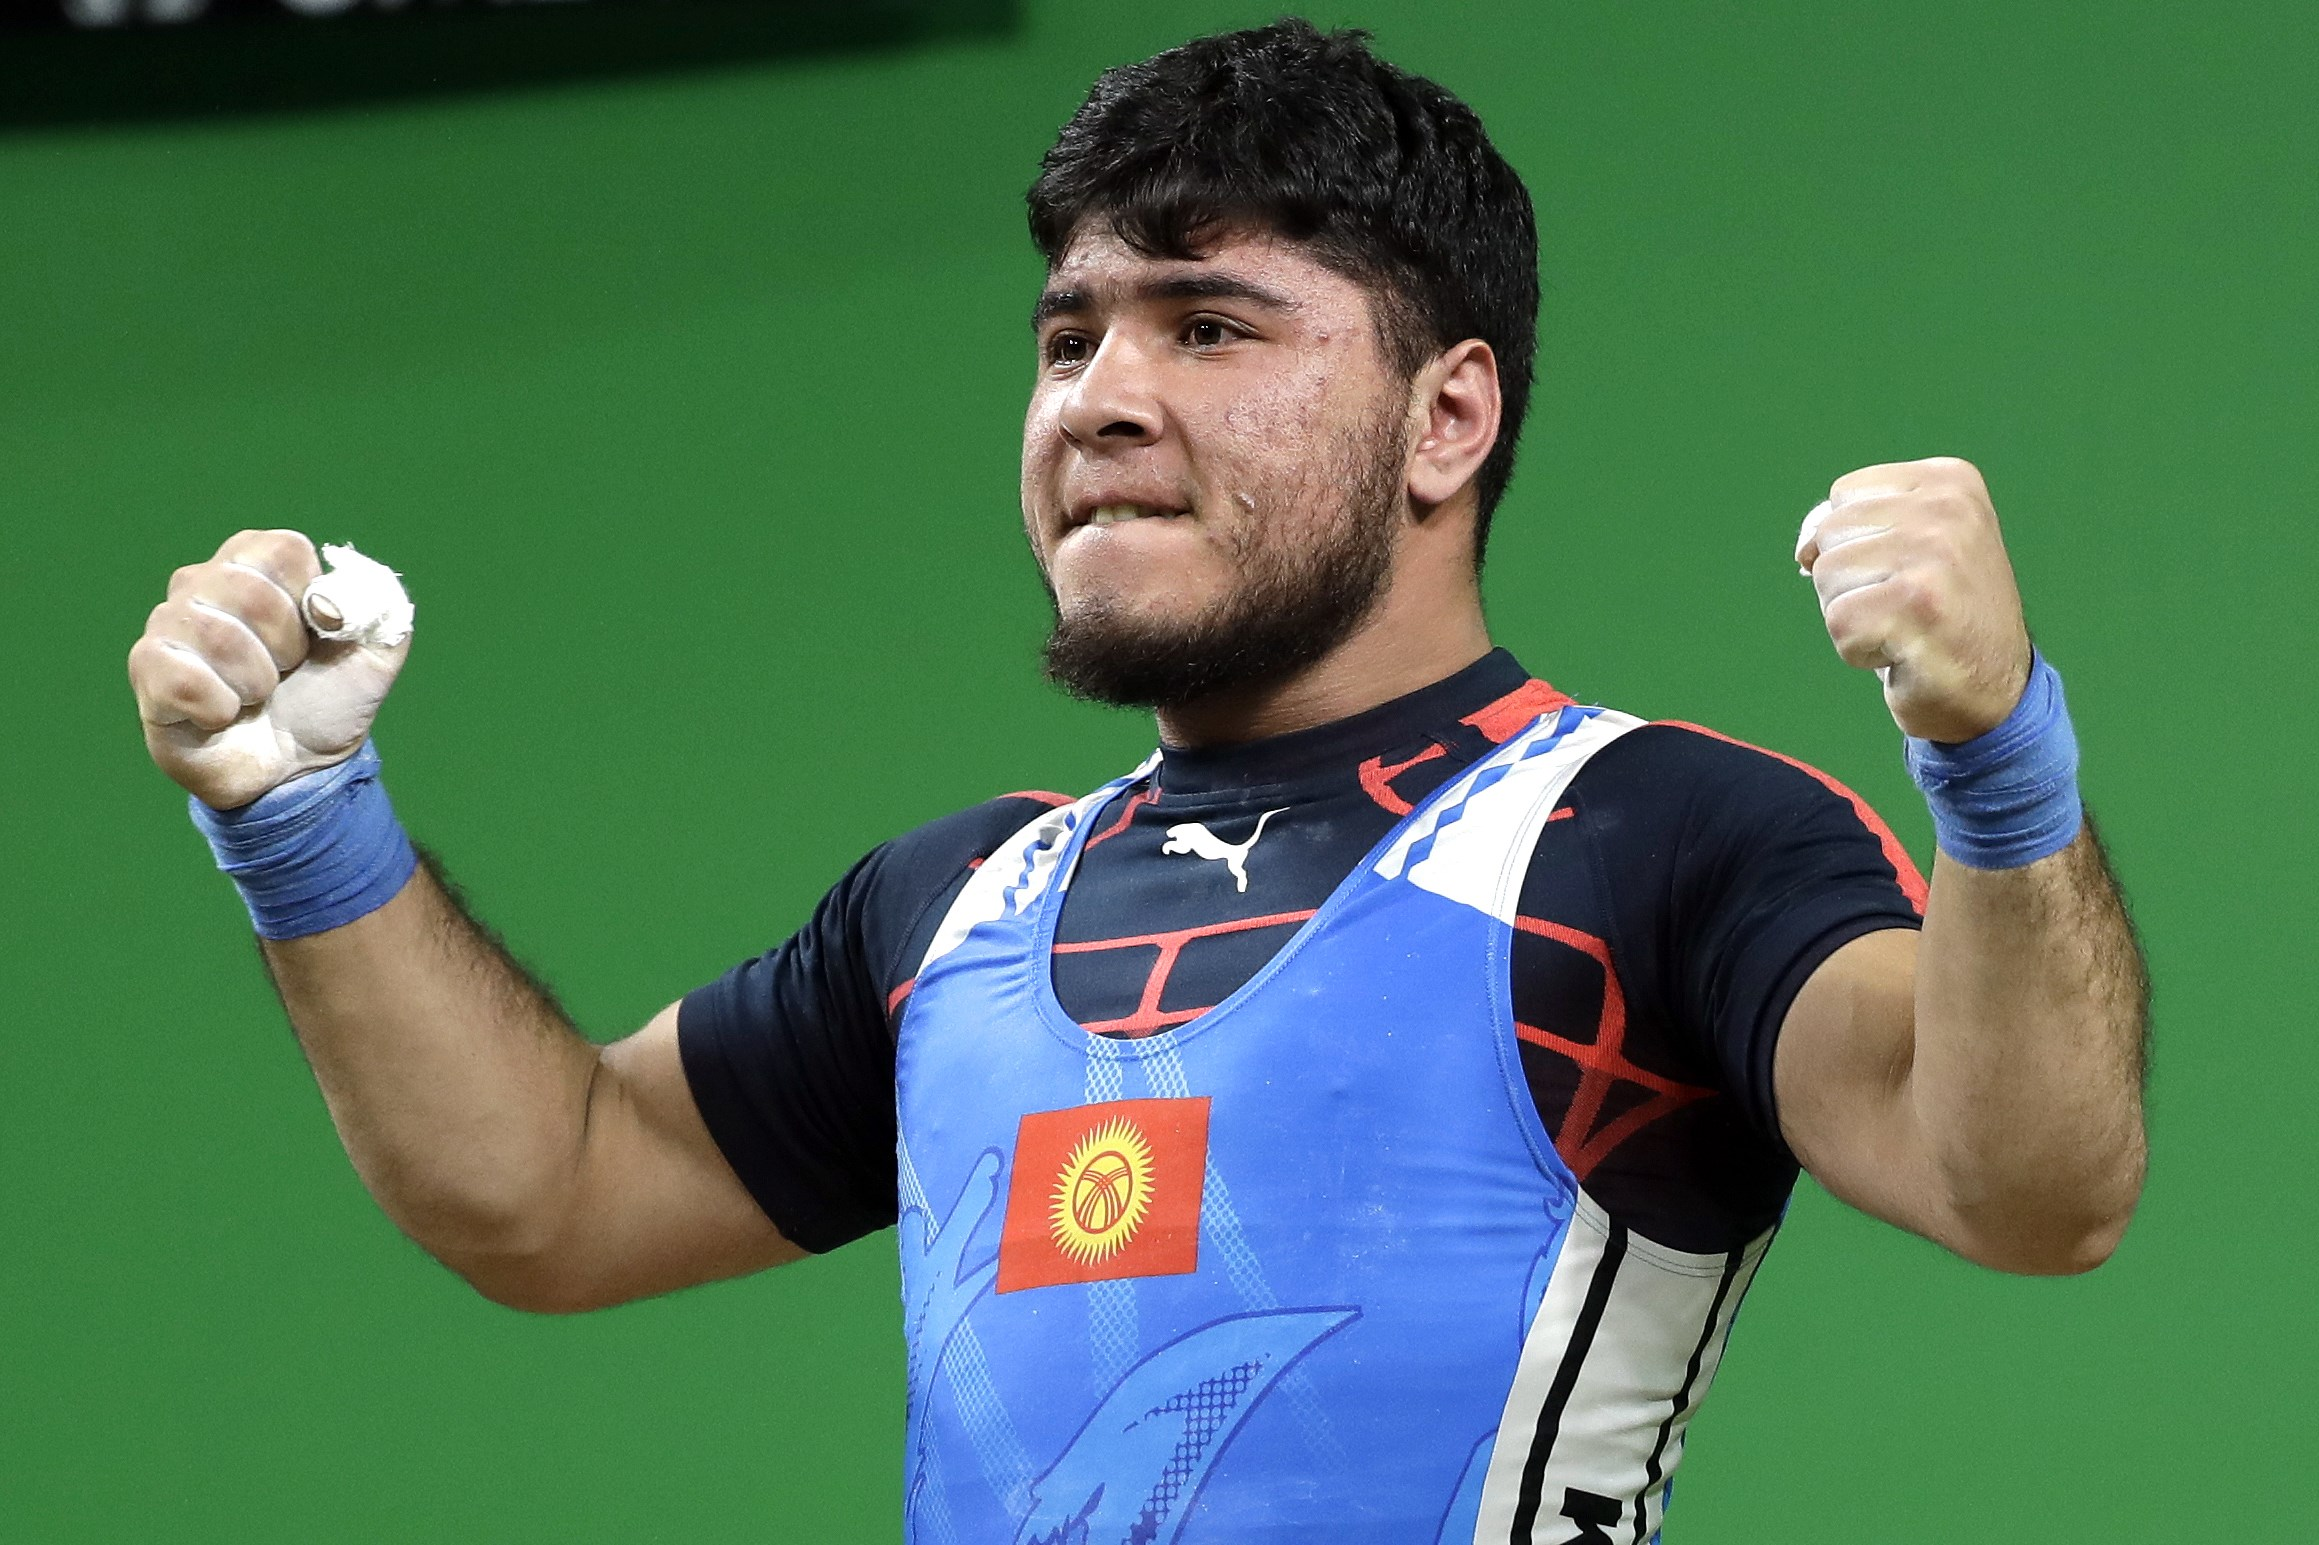 Izzat Artykov, of Kyrgystan, celebrates after a lift in the men's 69kg weightlifting competition at the 2016 Summer Olympics in Rio de Janeiro, Brazil, Tuesday, Aug. 9, 2016. (AP Photo/Mike Groll)